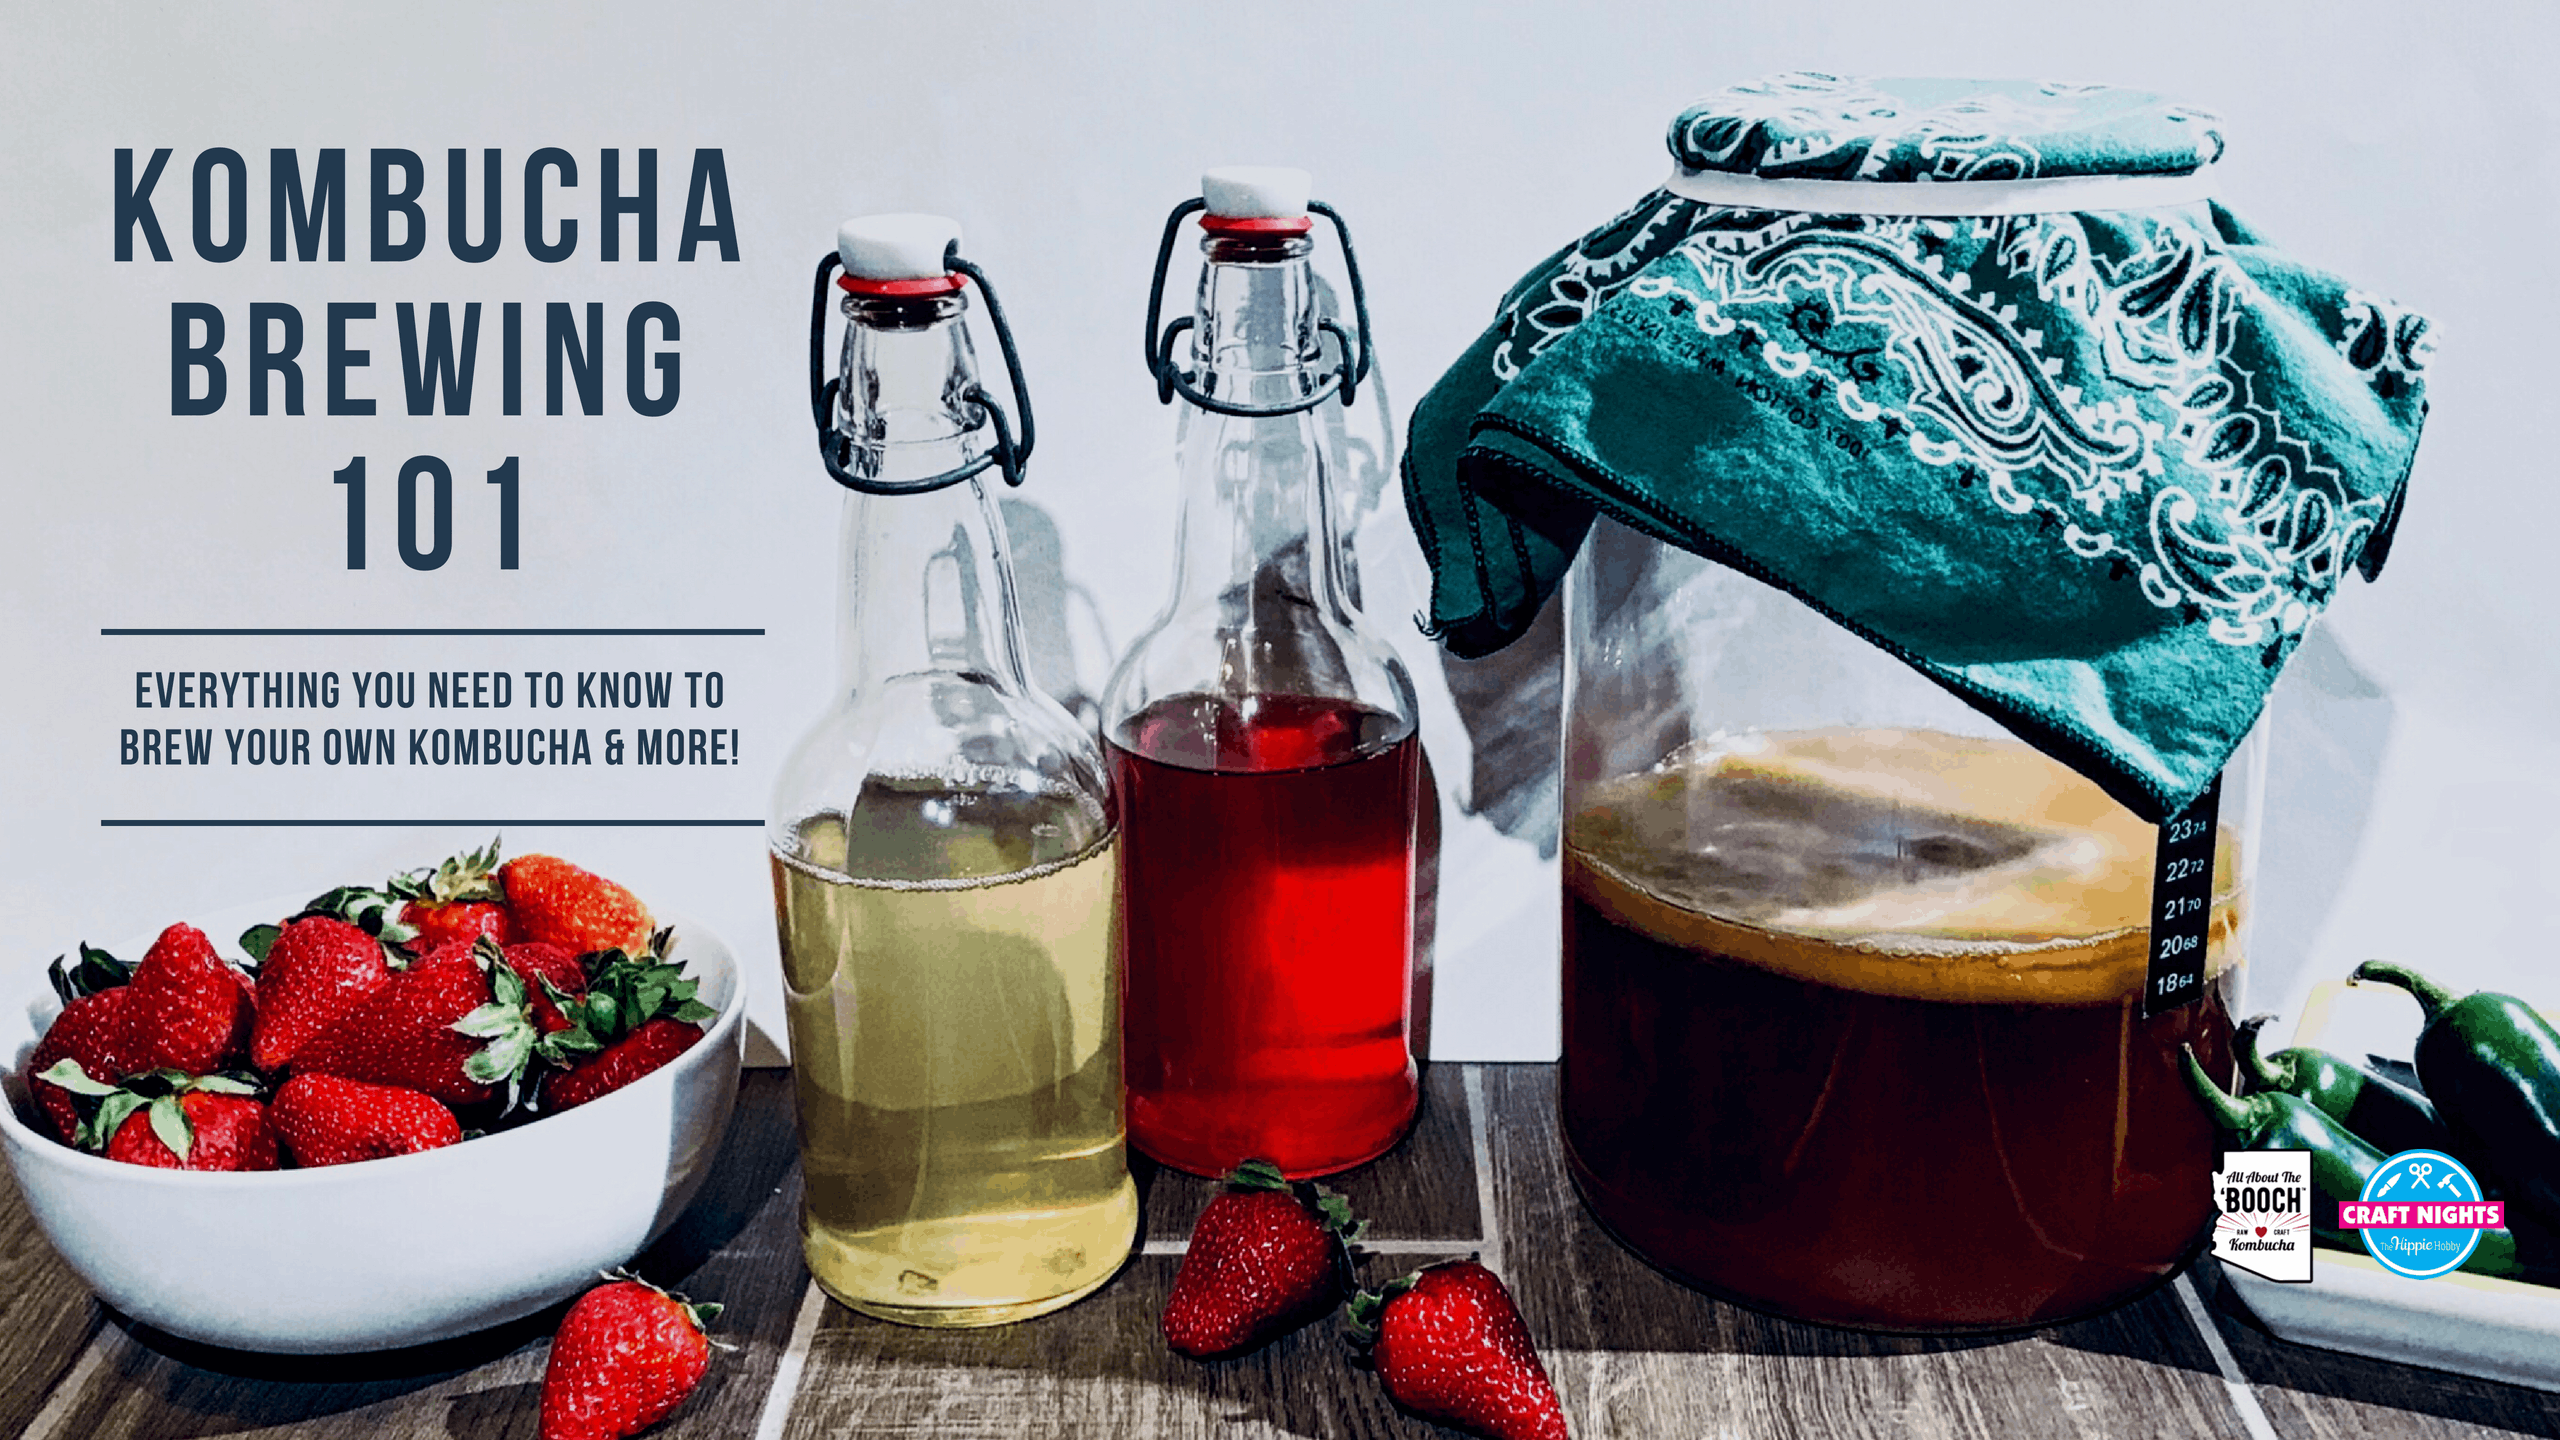 Kombucha Brewing 101 - September